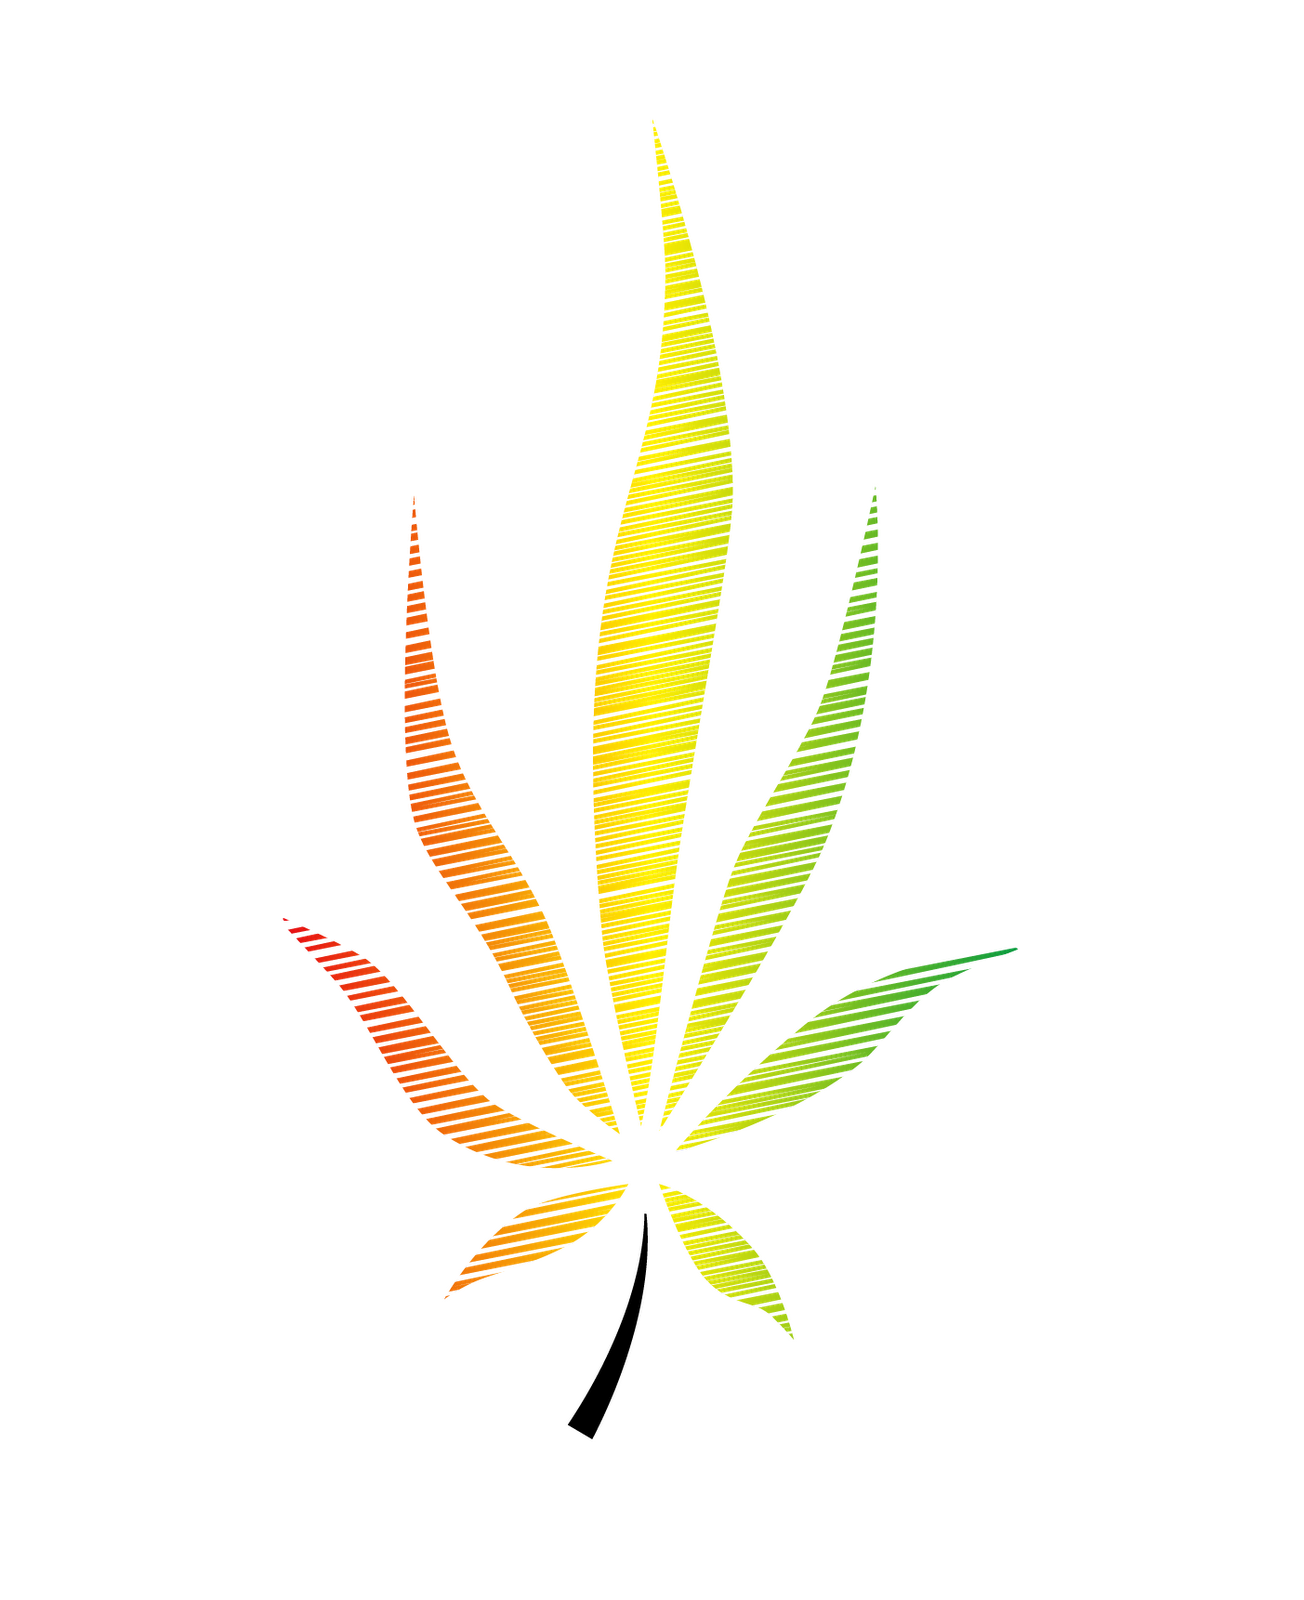 Drawn weed needle Free Cartoon Plant Vector Cannabis